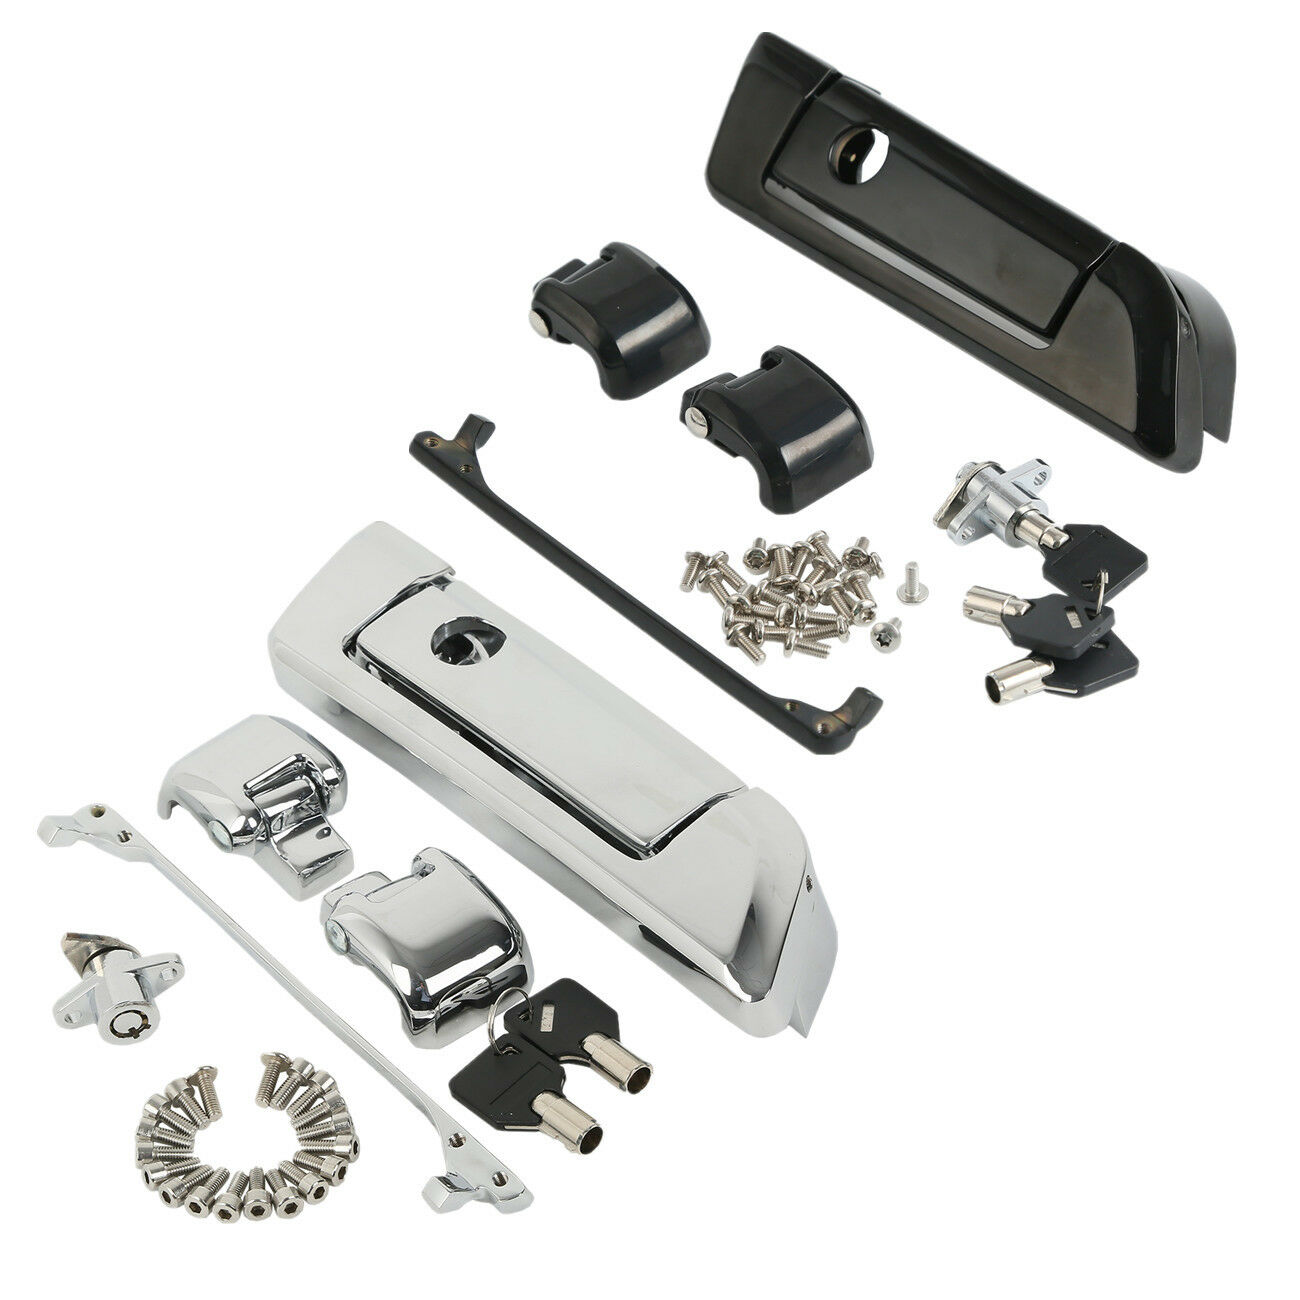 Motorcycle Tour Pak Pack Trunk Latch For Harley Touring Road King Street Glide Electra Ultra-Classic FLHT FLHX 2014-2018 17 16